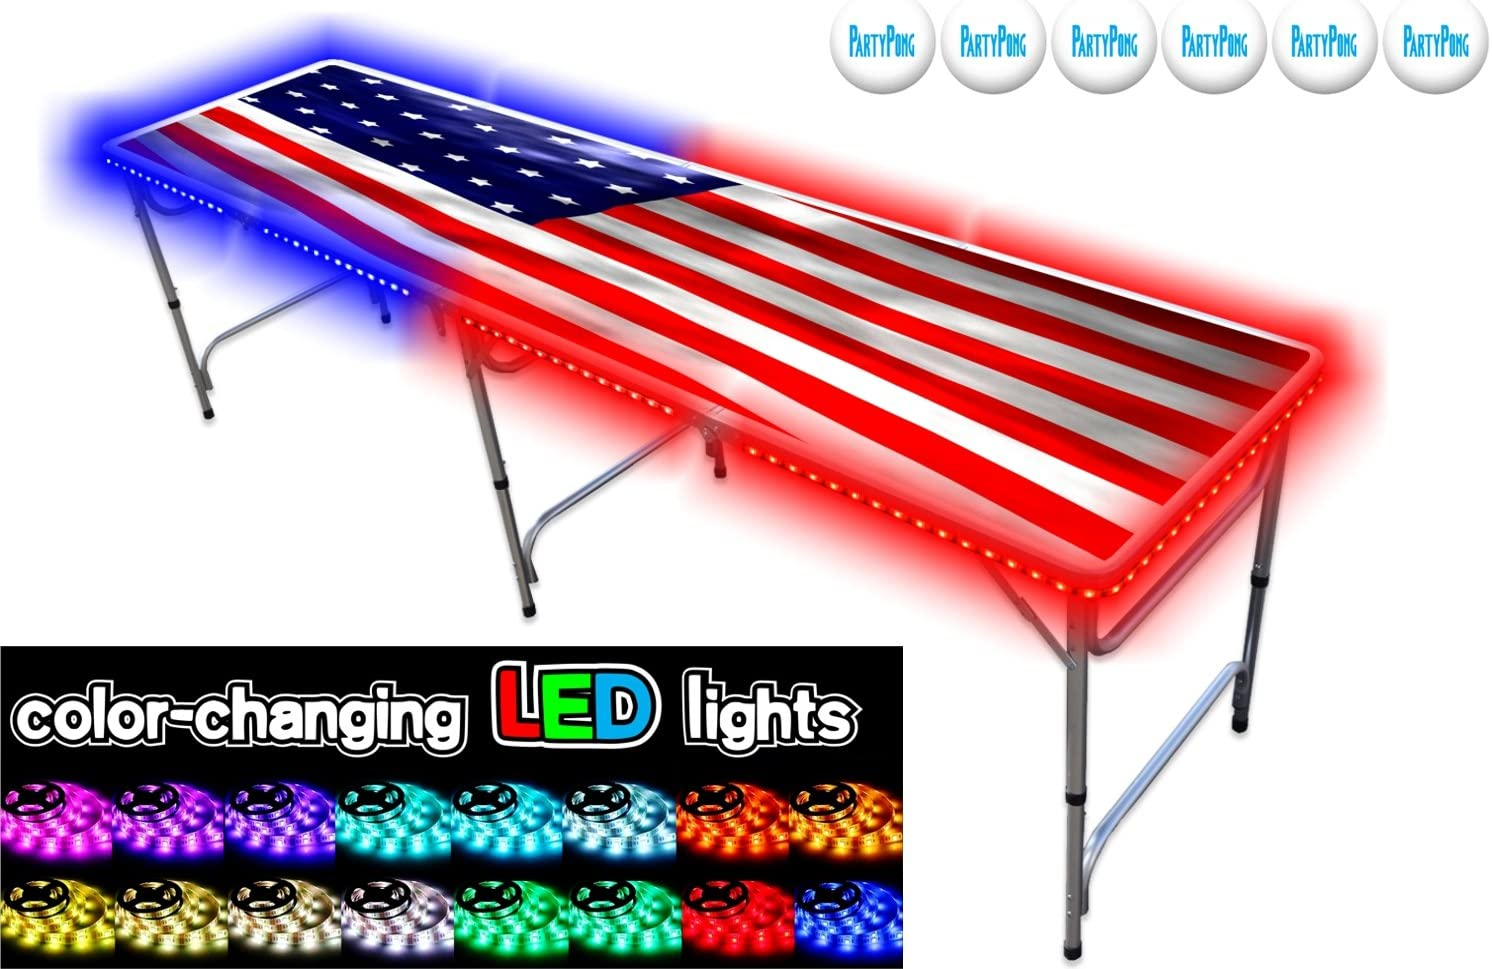 Partypongtables.com 8-foot Beer Pong Table W/led Lights - Usa Edition